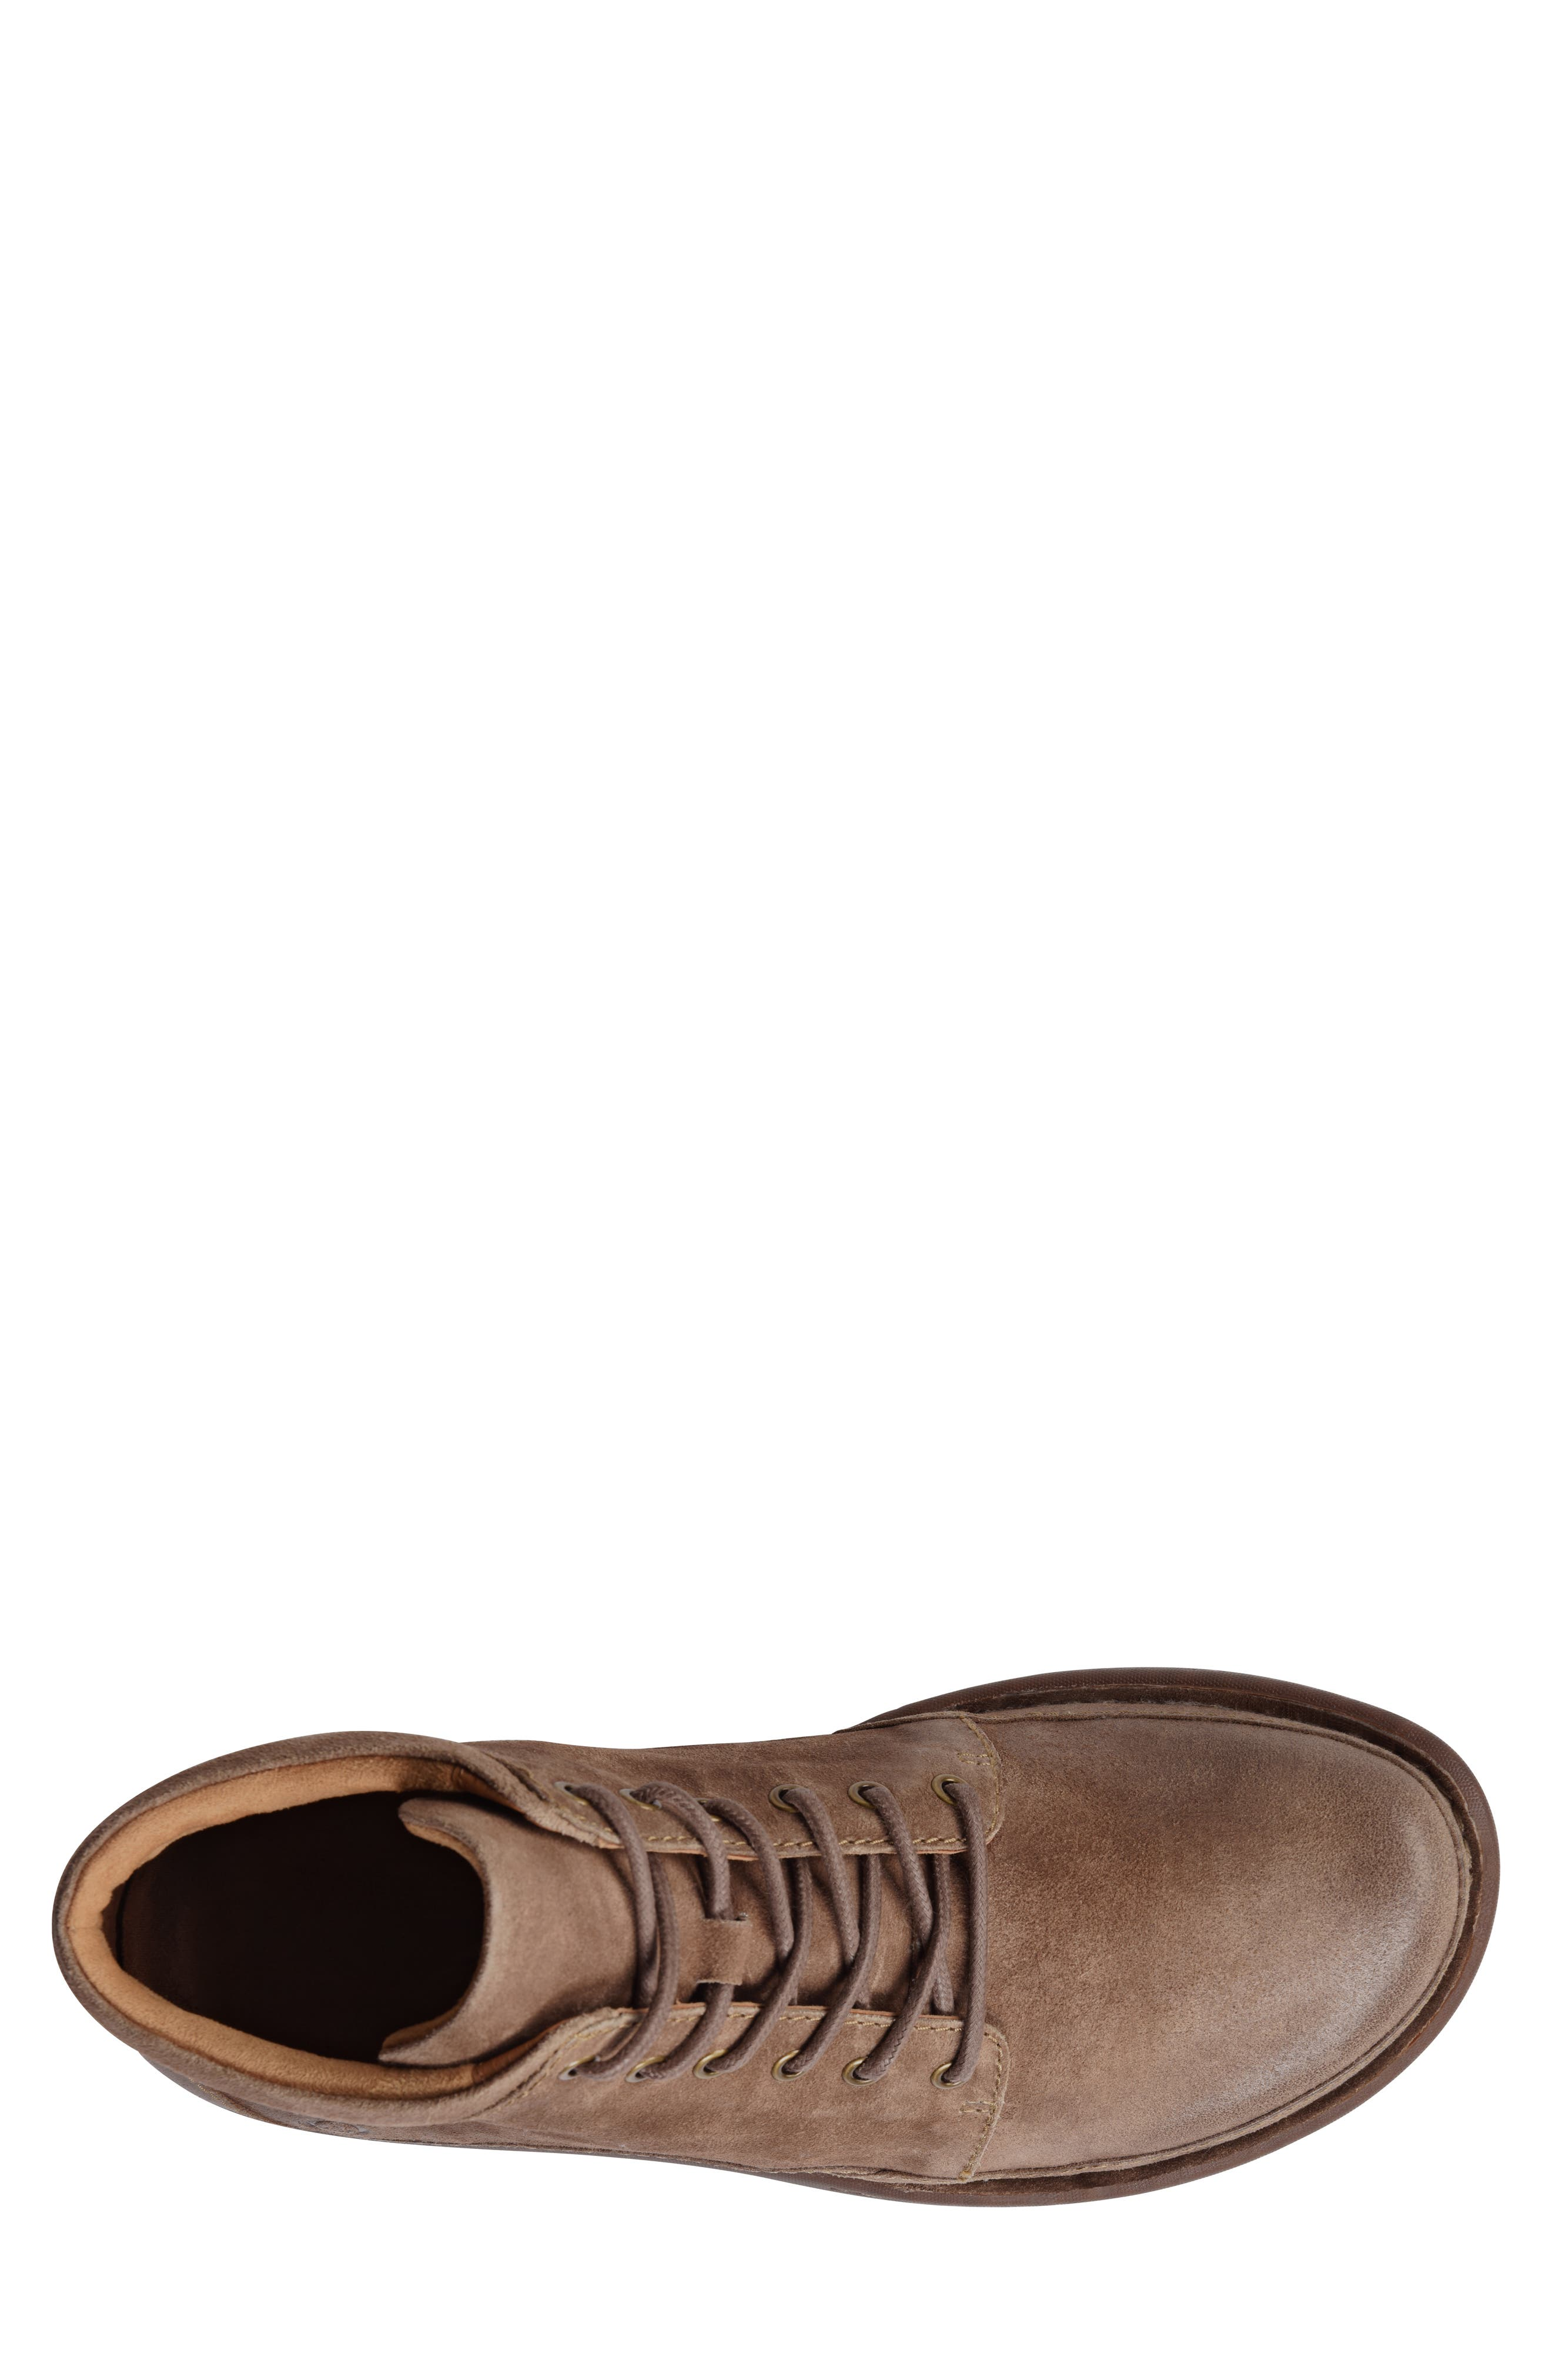 BØRN, Nigel Low Boot, Alternate thumbnail 5, color, TAUPE LEATHER